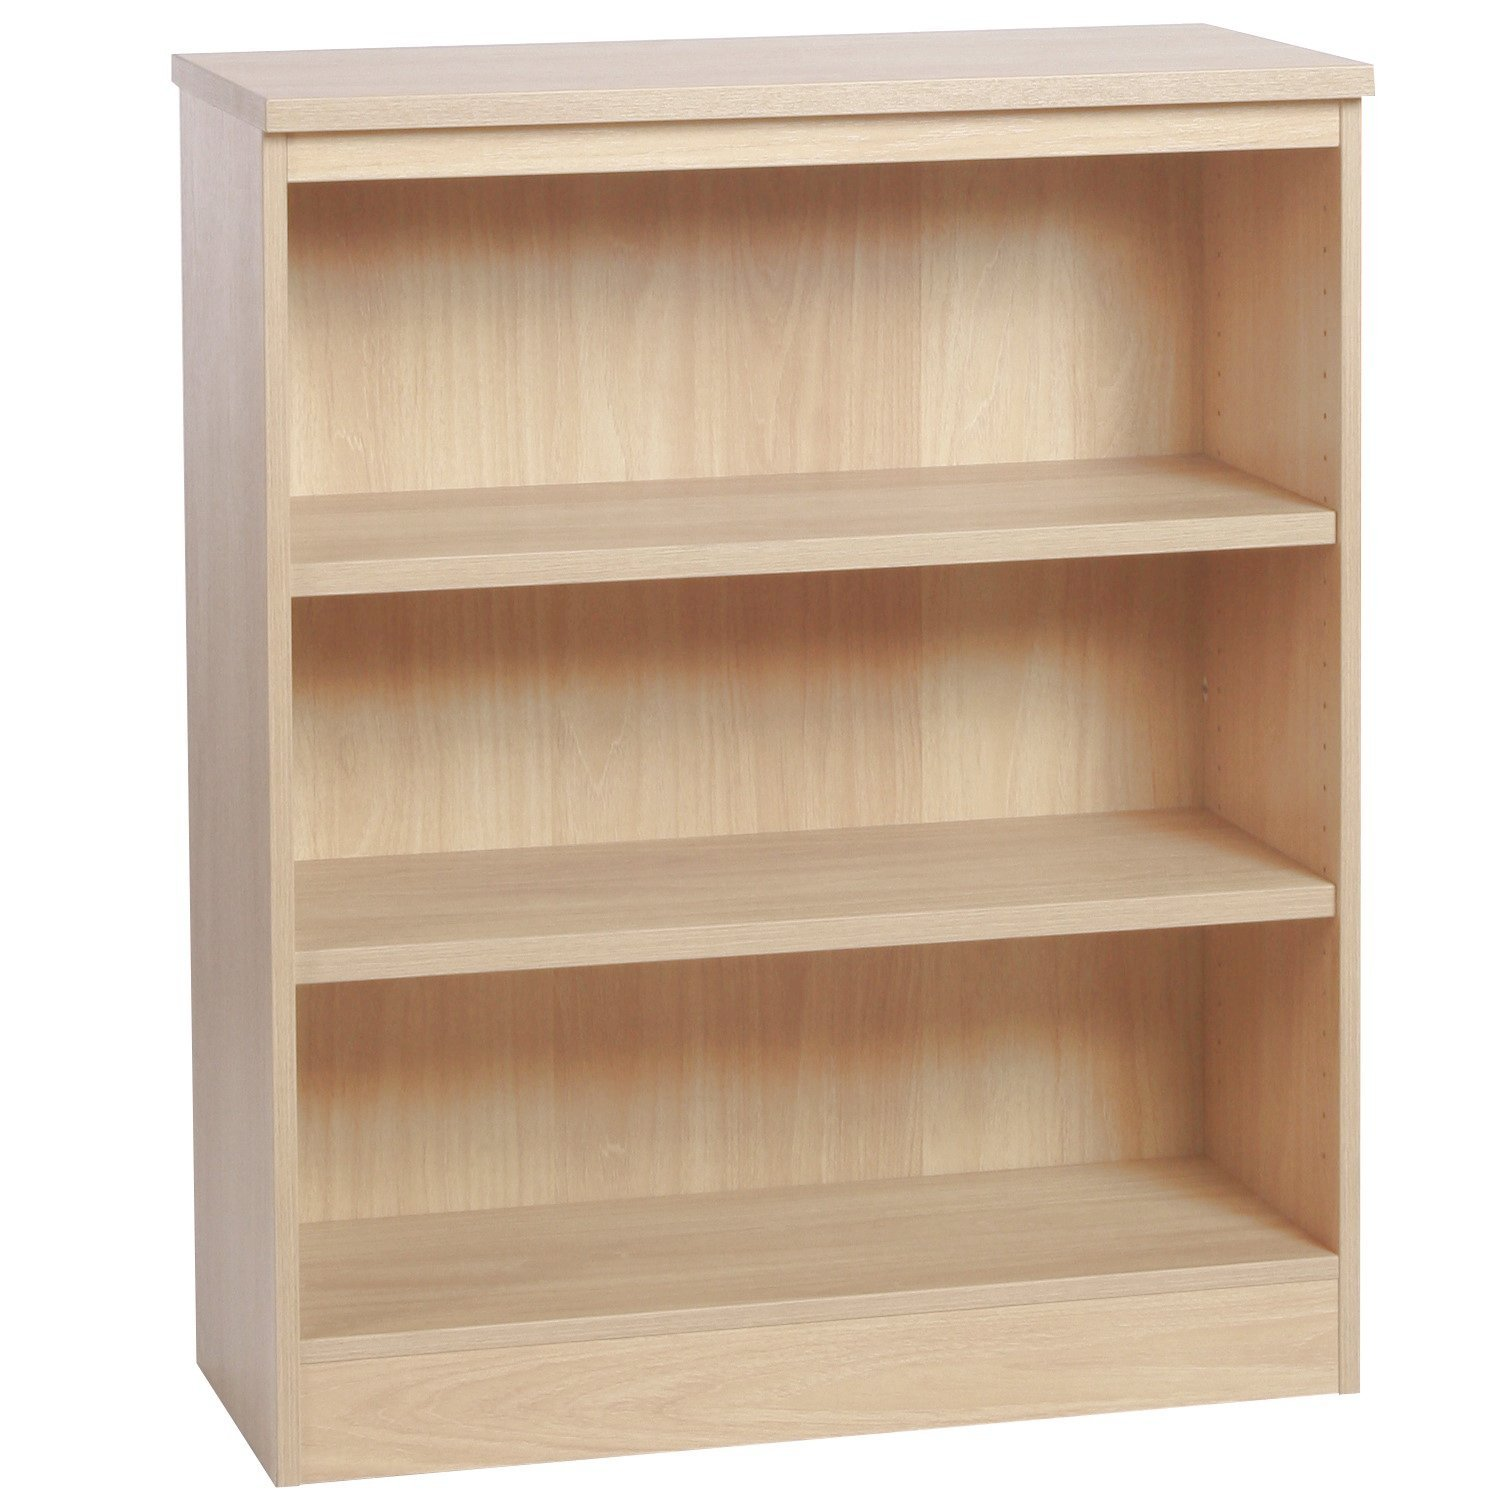 Mid Height Bookcase 850mm Wide